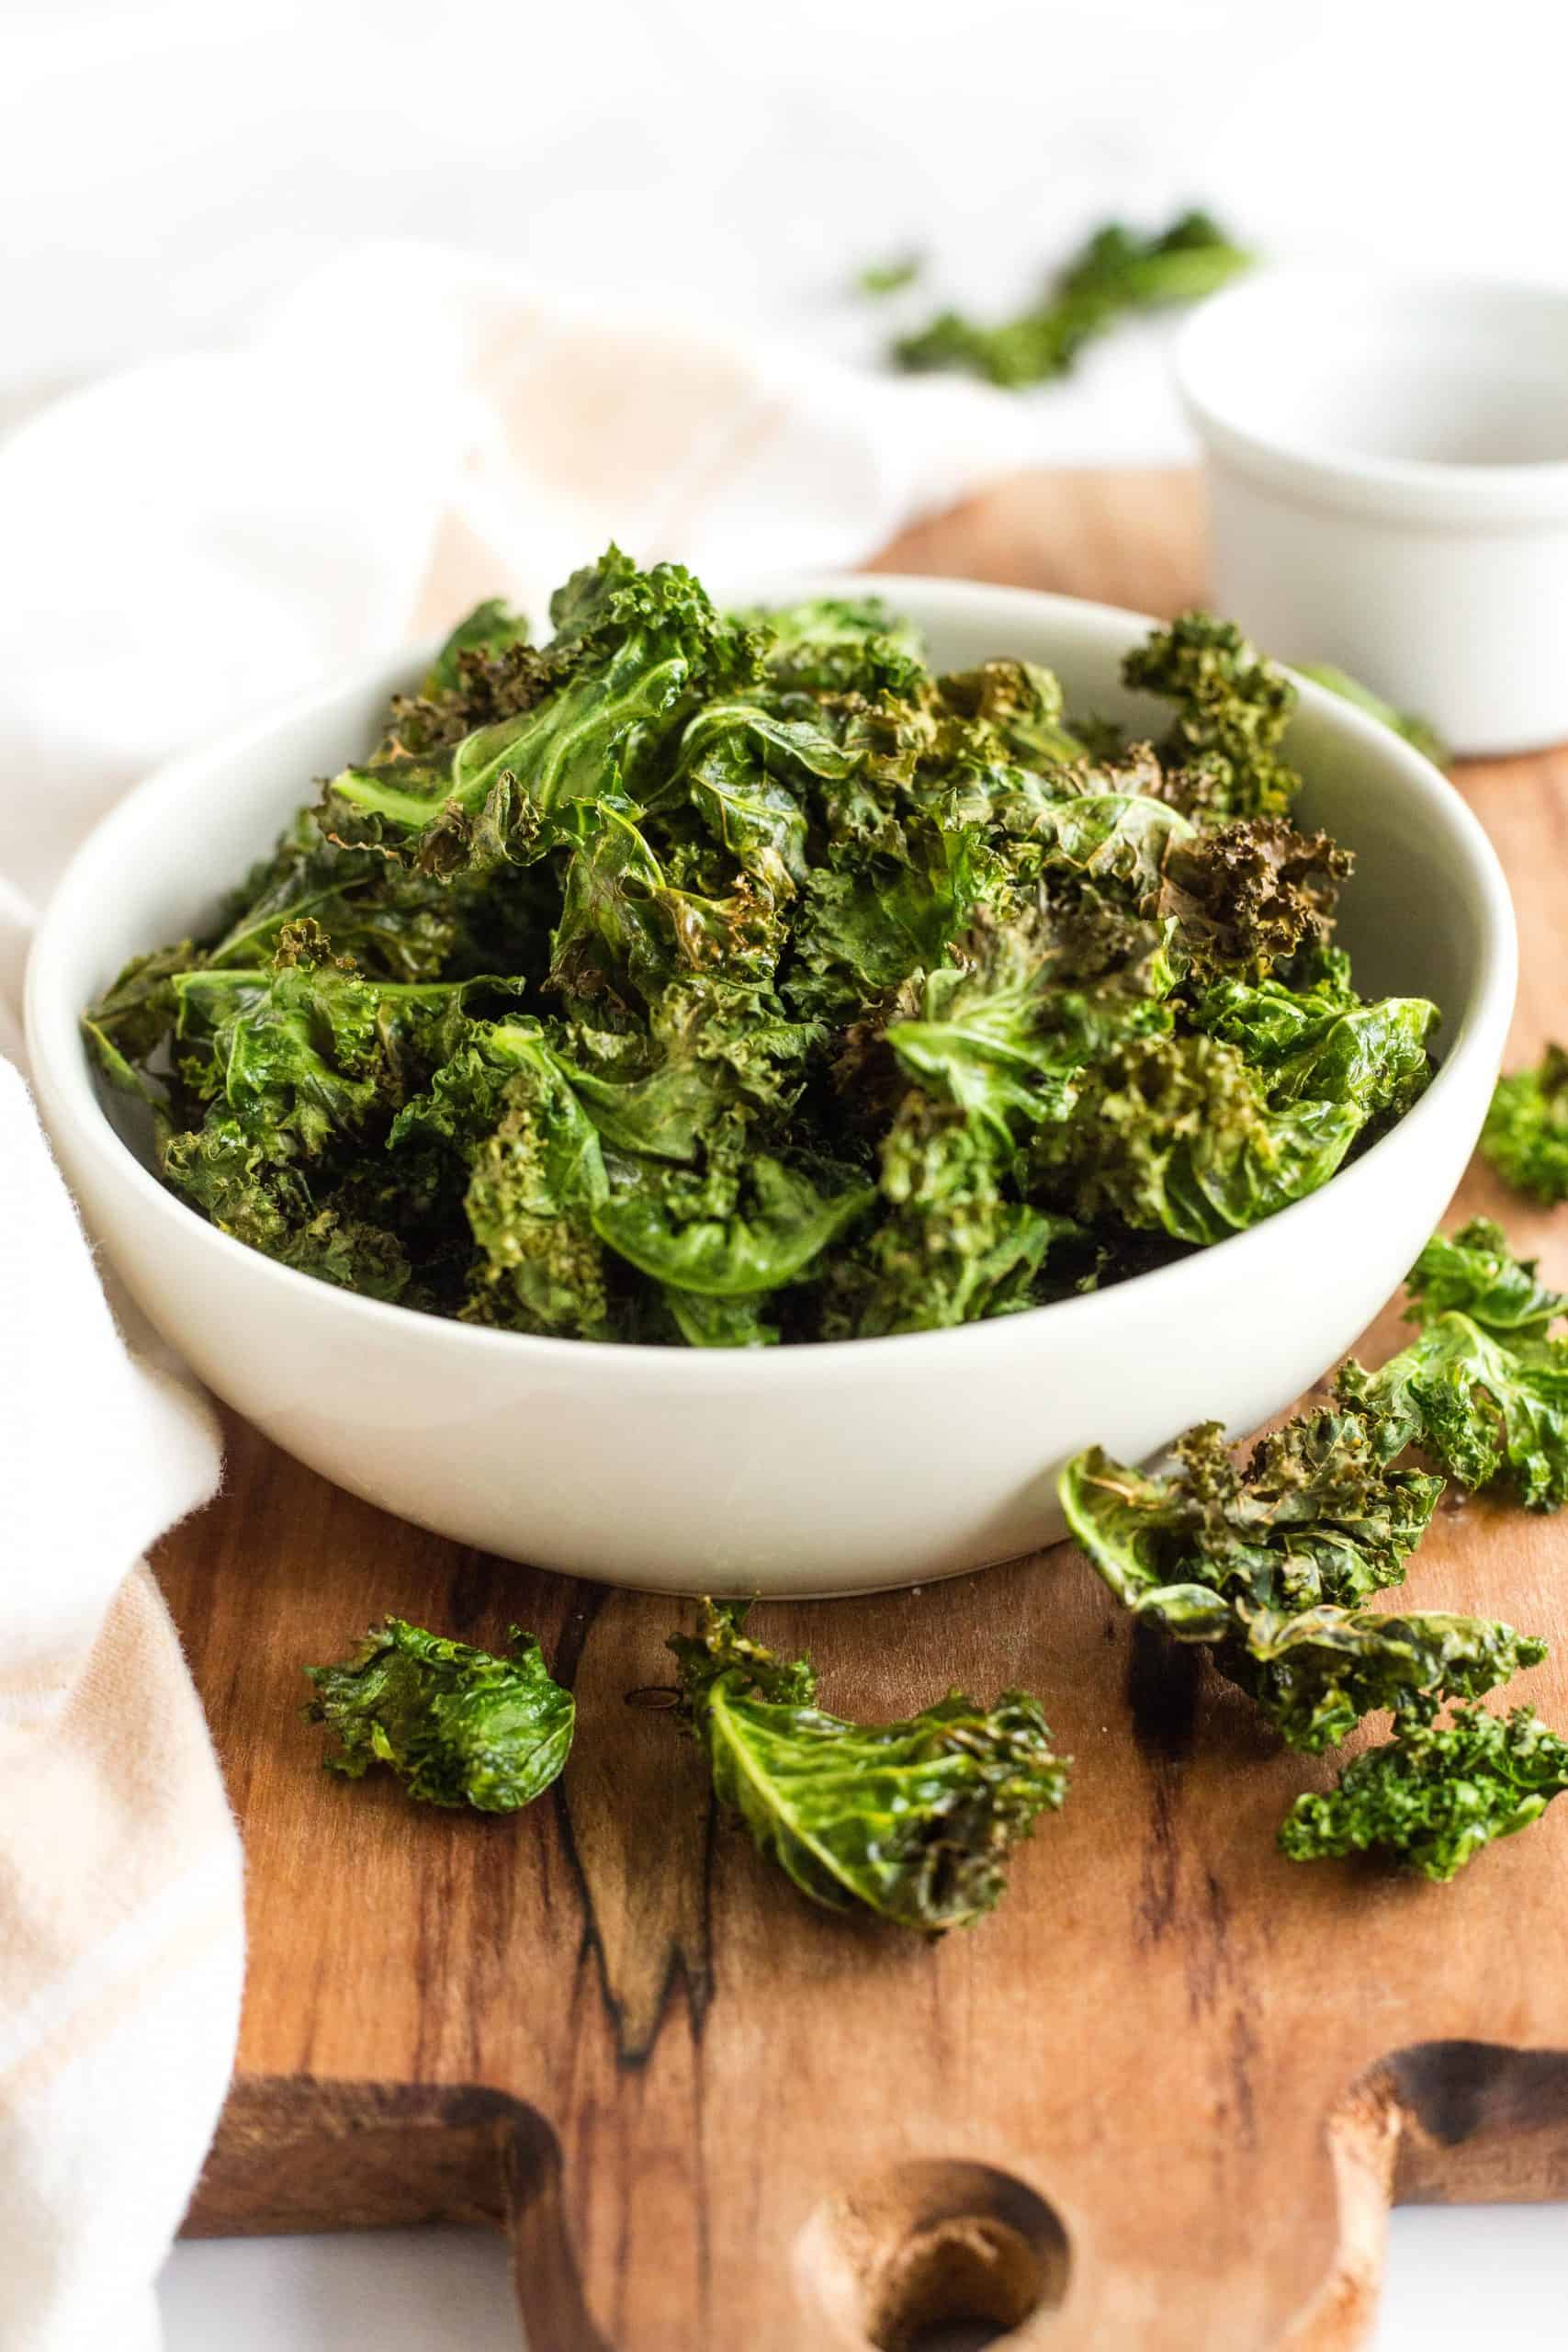 A bowl of kale chips on a wooden board.